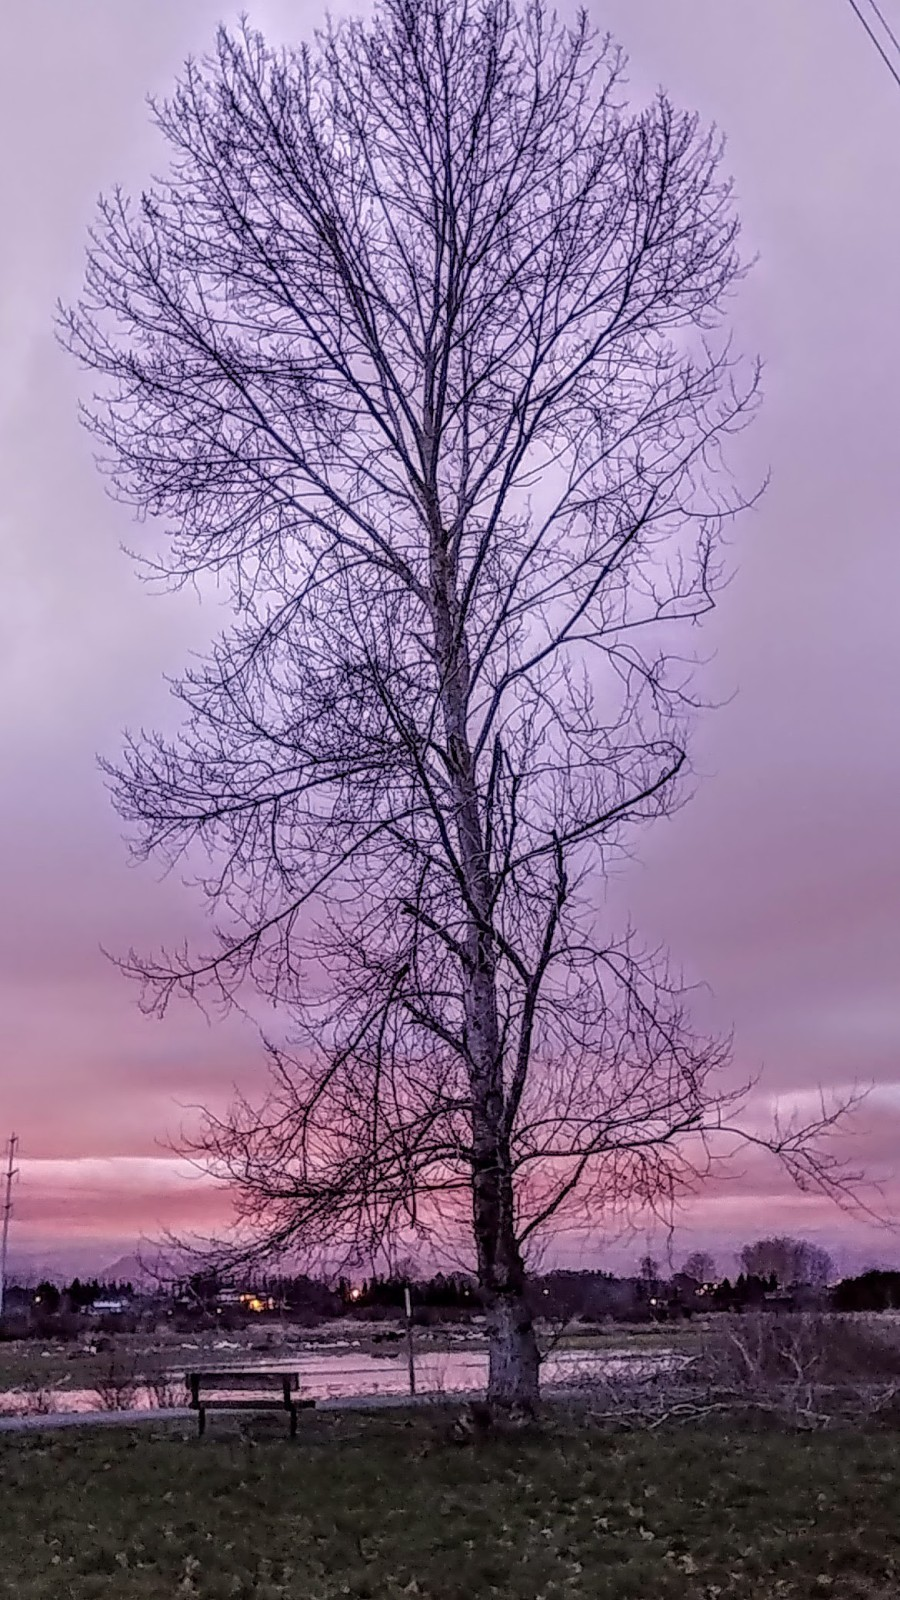 Tree, sunset, dusk, nature, pnw.